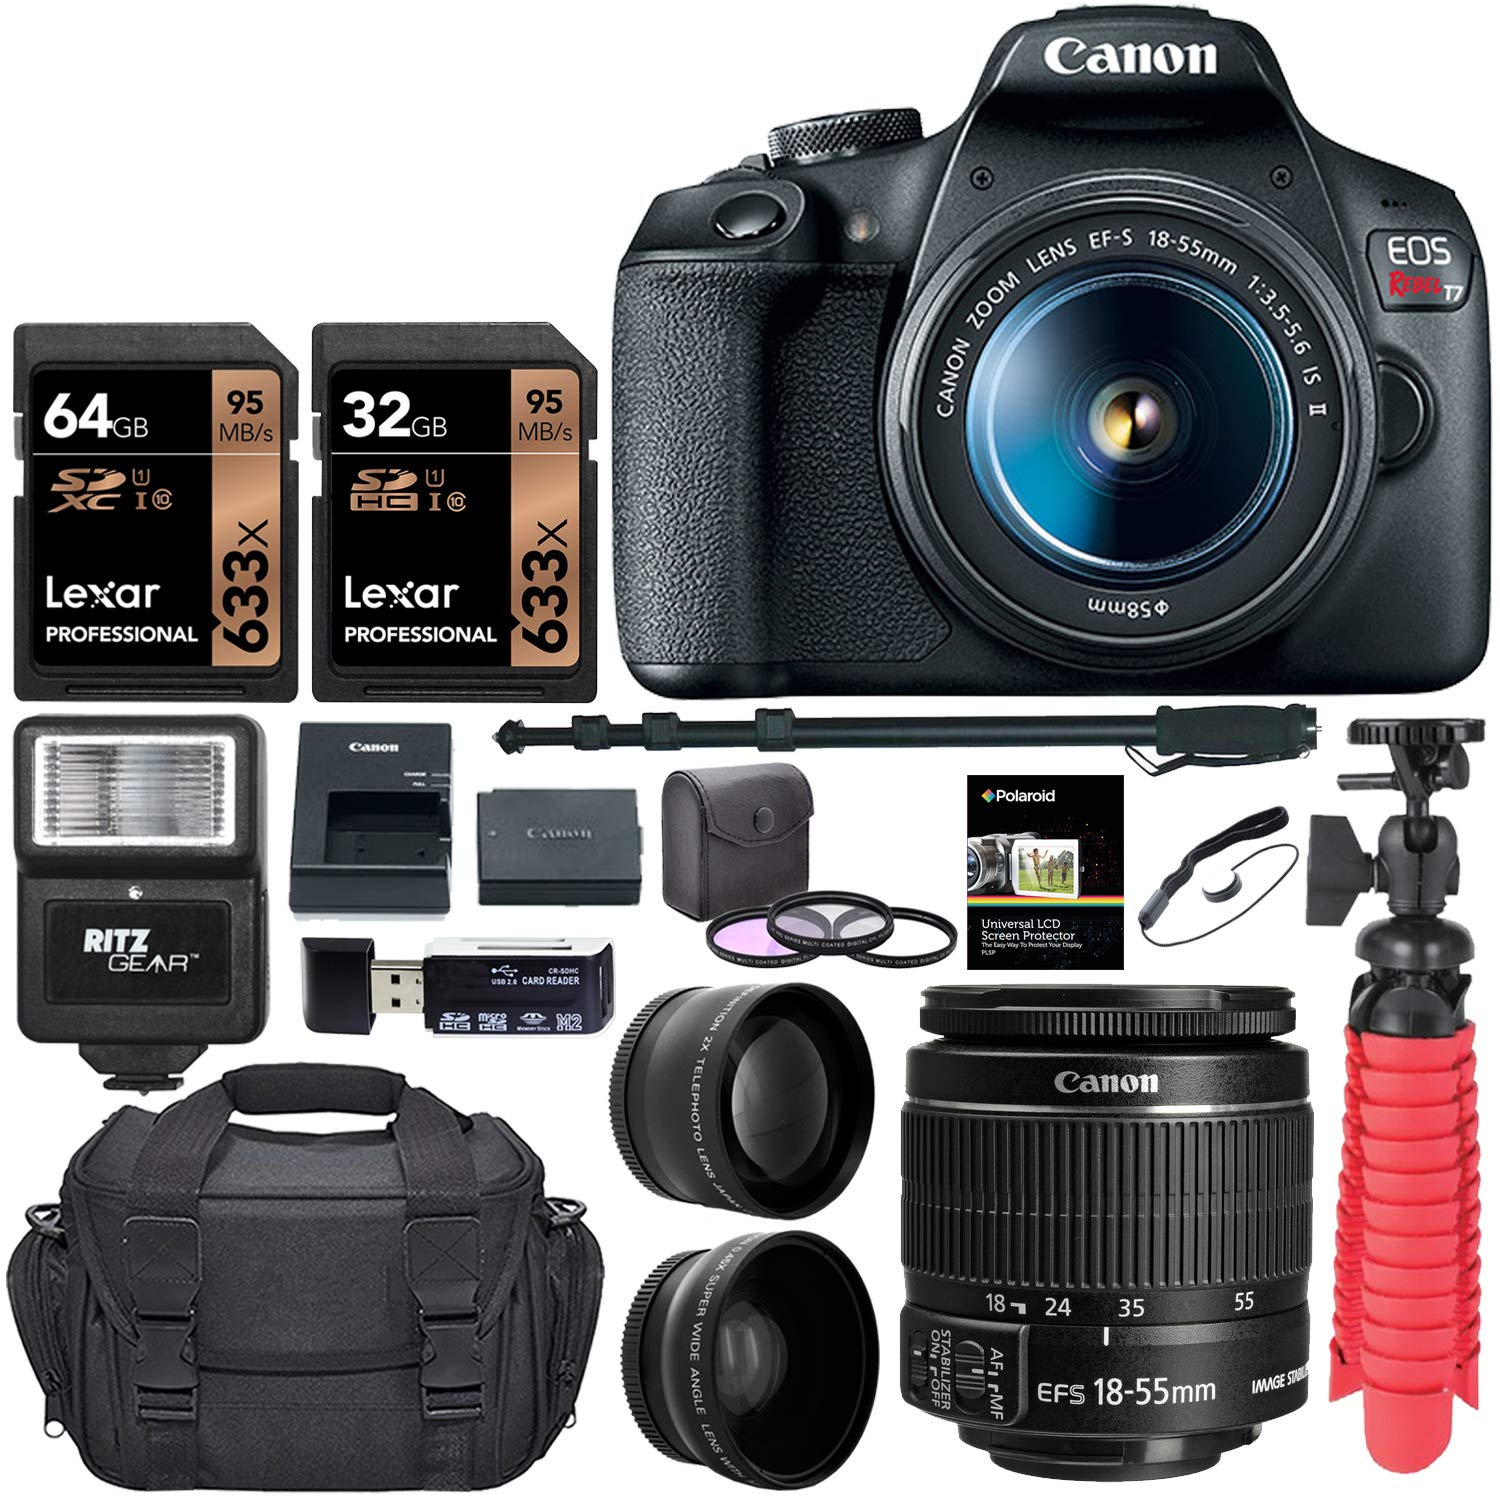 Canon EOS Rebel T7 24MP Camera + EF-S 18-55mm is II Lens (Successor for EOS Rebel T6) + 96GB + 57'' Tripod+ Camera Bag+ Cleaning Kit+ + 58mm 2X Professional Telephoto & 58mm Wide Angle Lens &More by Canon (Image #1)